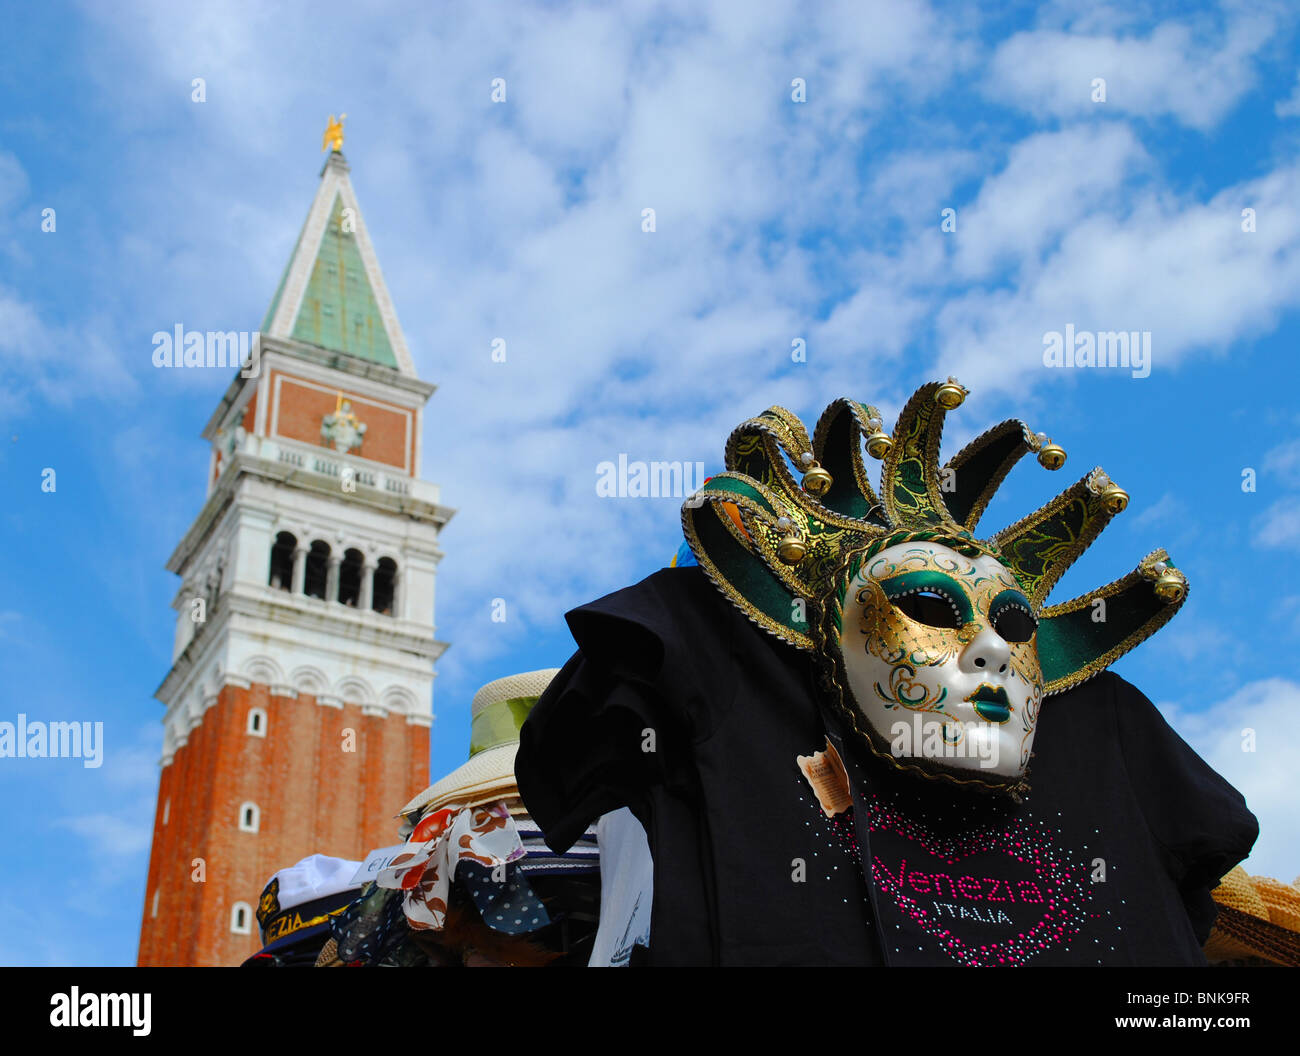 Mask and Bell tower in St Mark's square, Venice, Italy - Stock Image